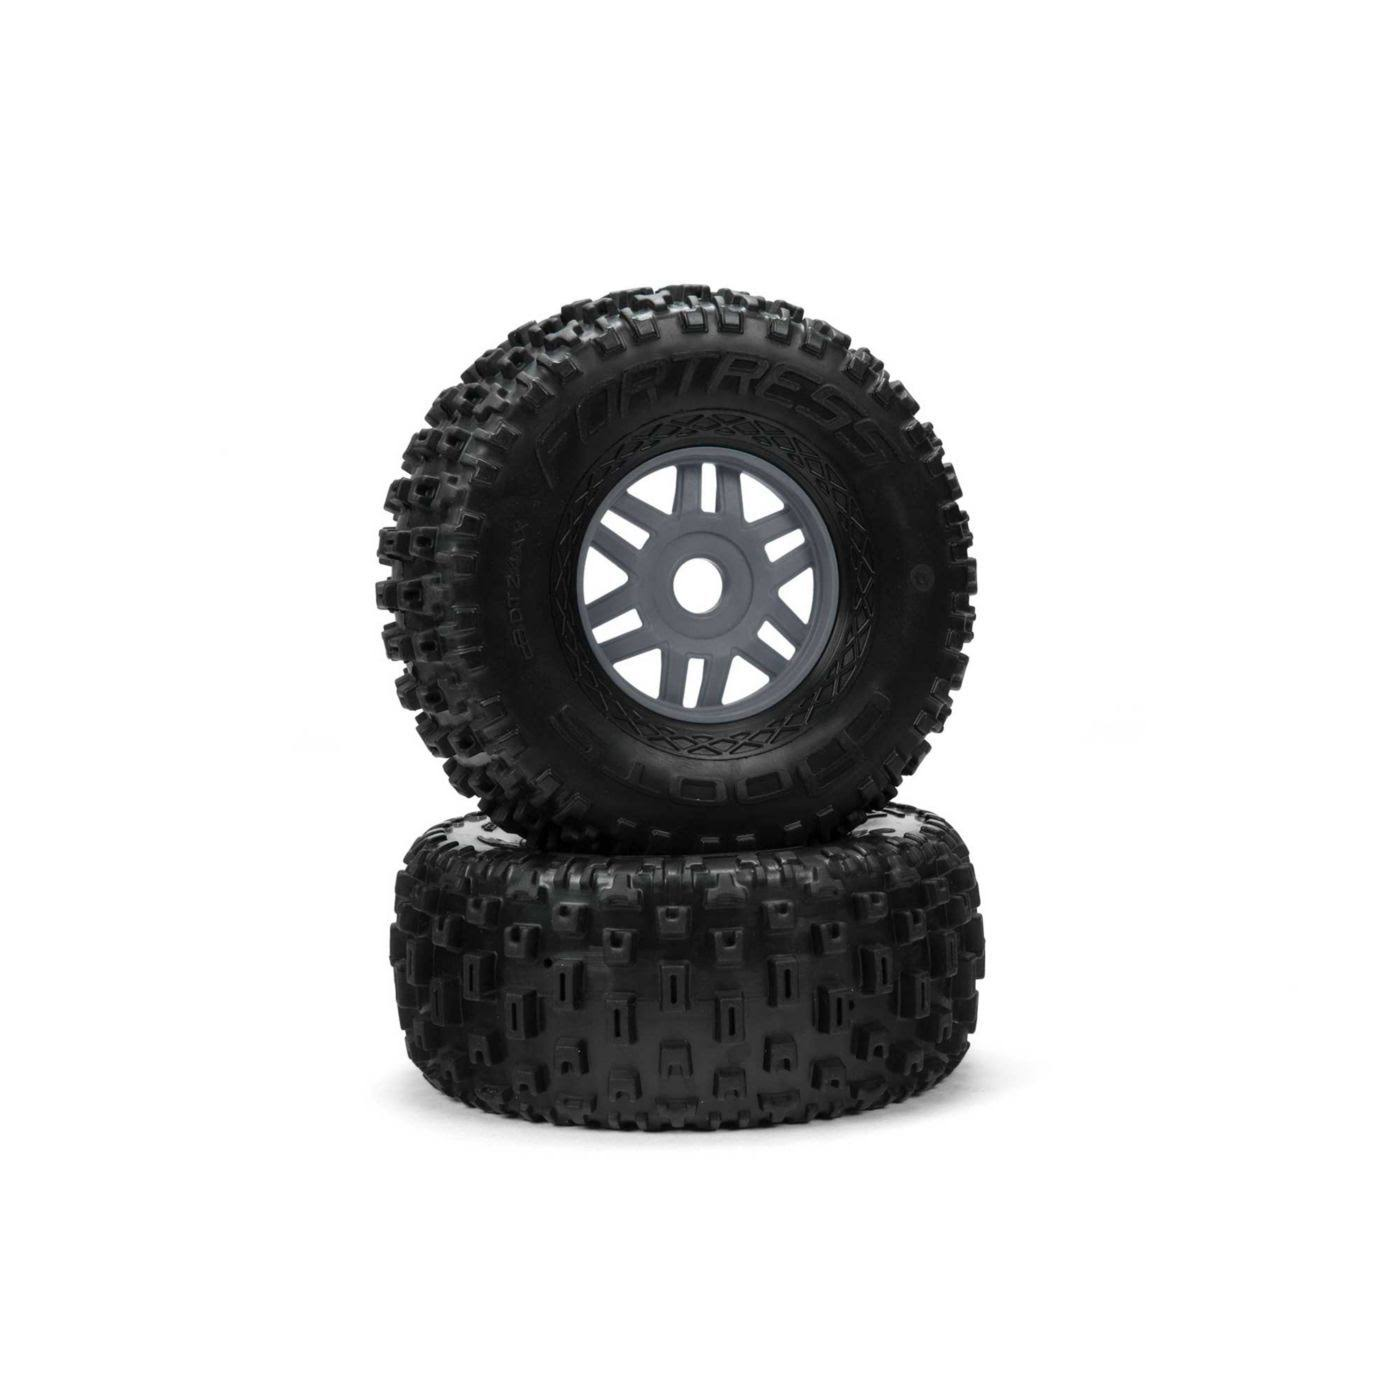 Arrma dBoots 'Fortress' Tire Set Glued - Gun Metal ARA550069